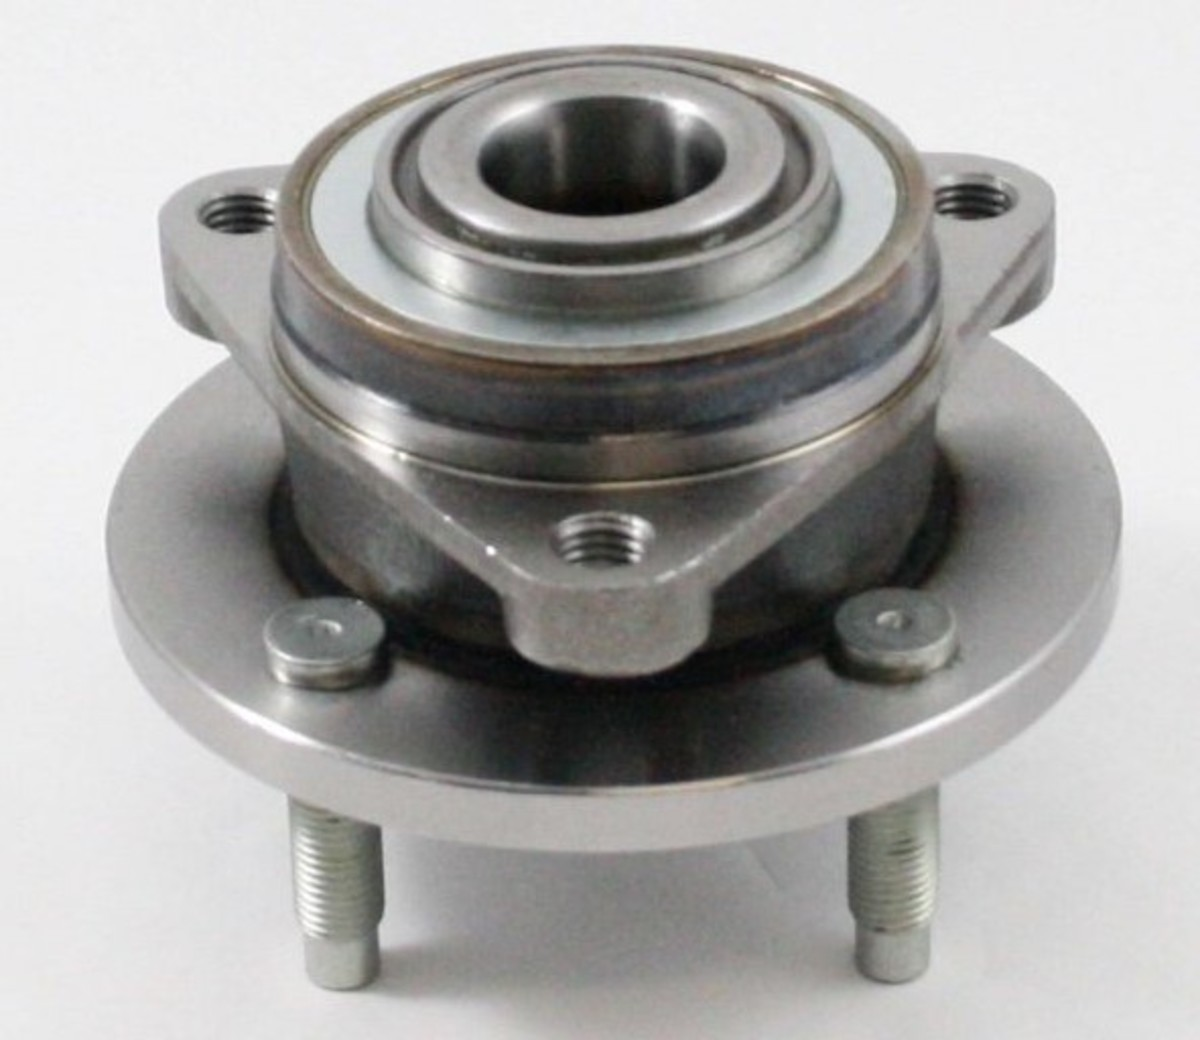 '03–'07 Saturn Ion Front Wheel Hub and Bearing Replacement (With Video)